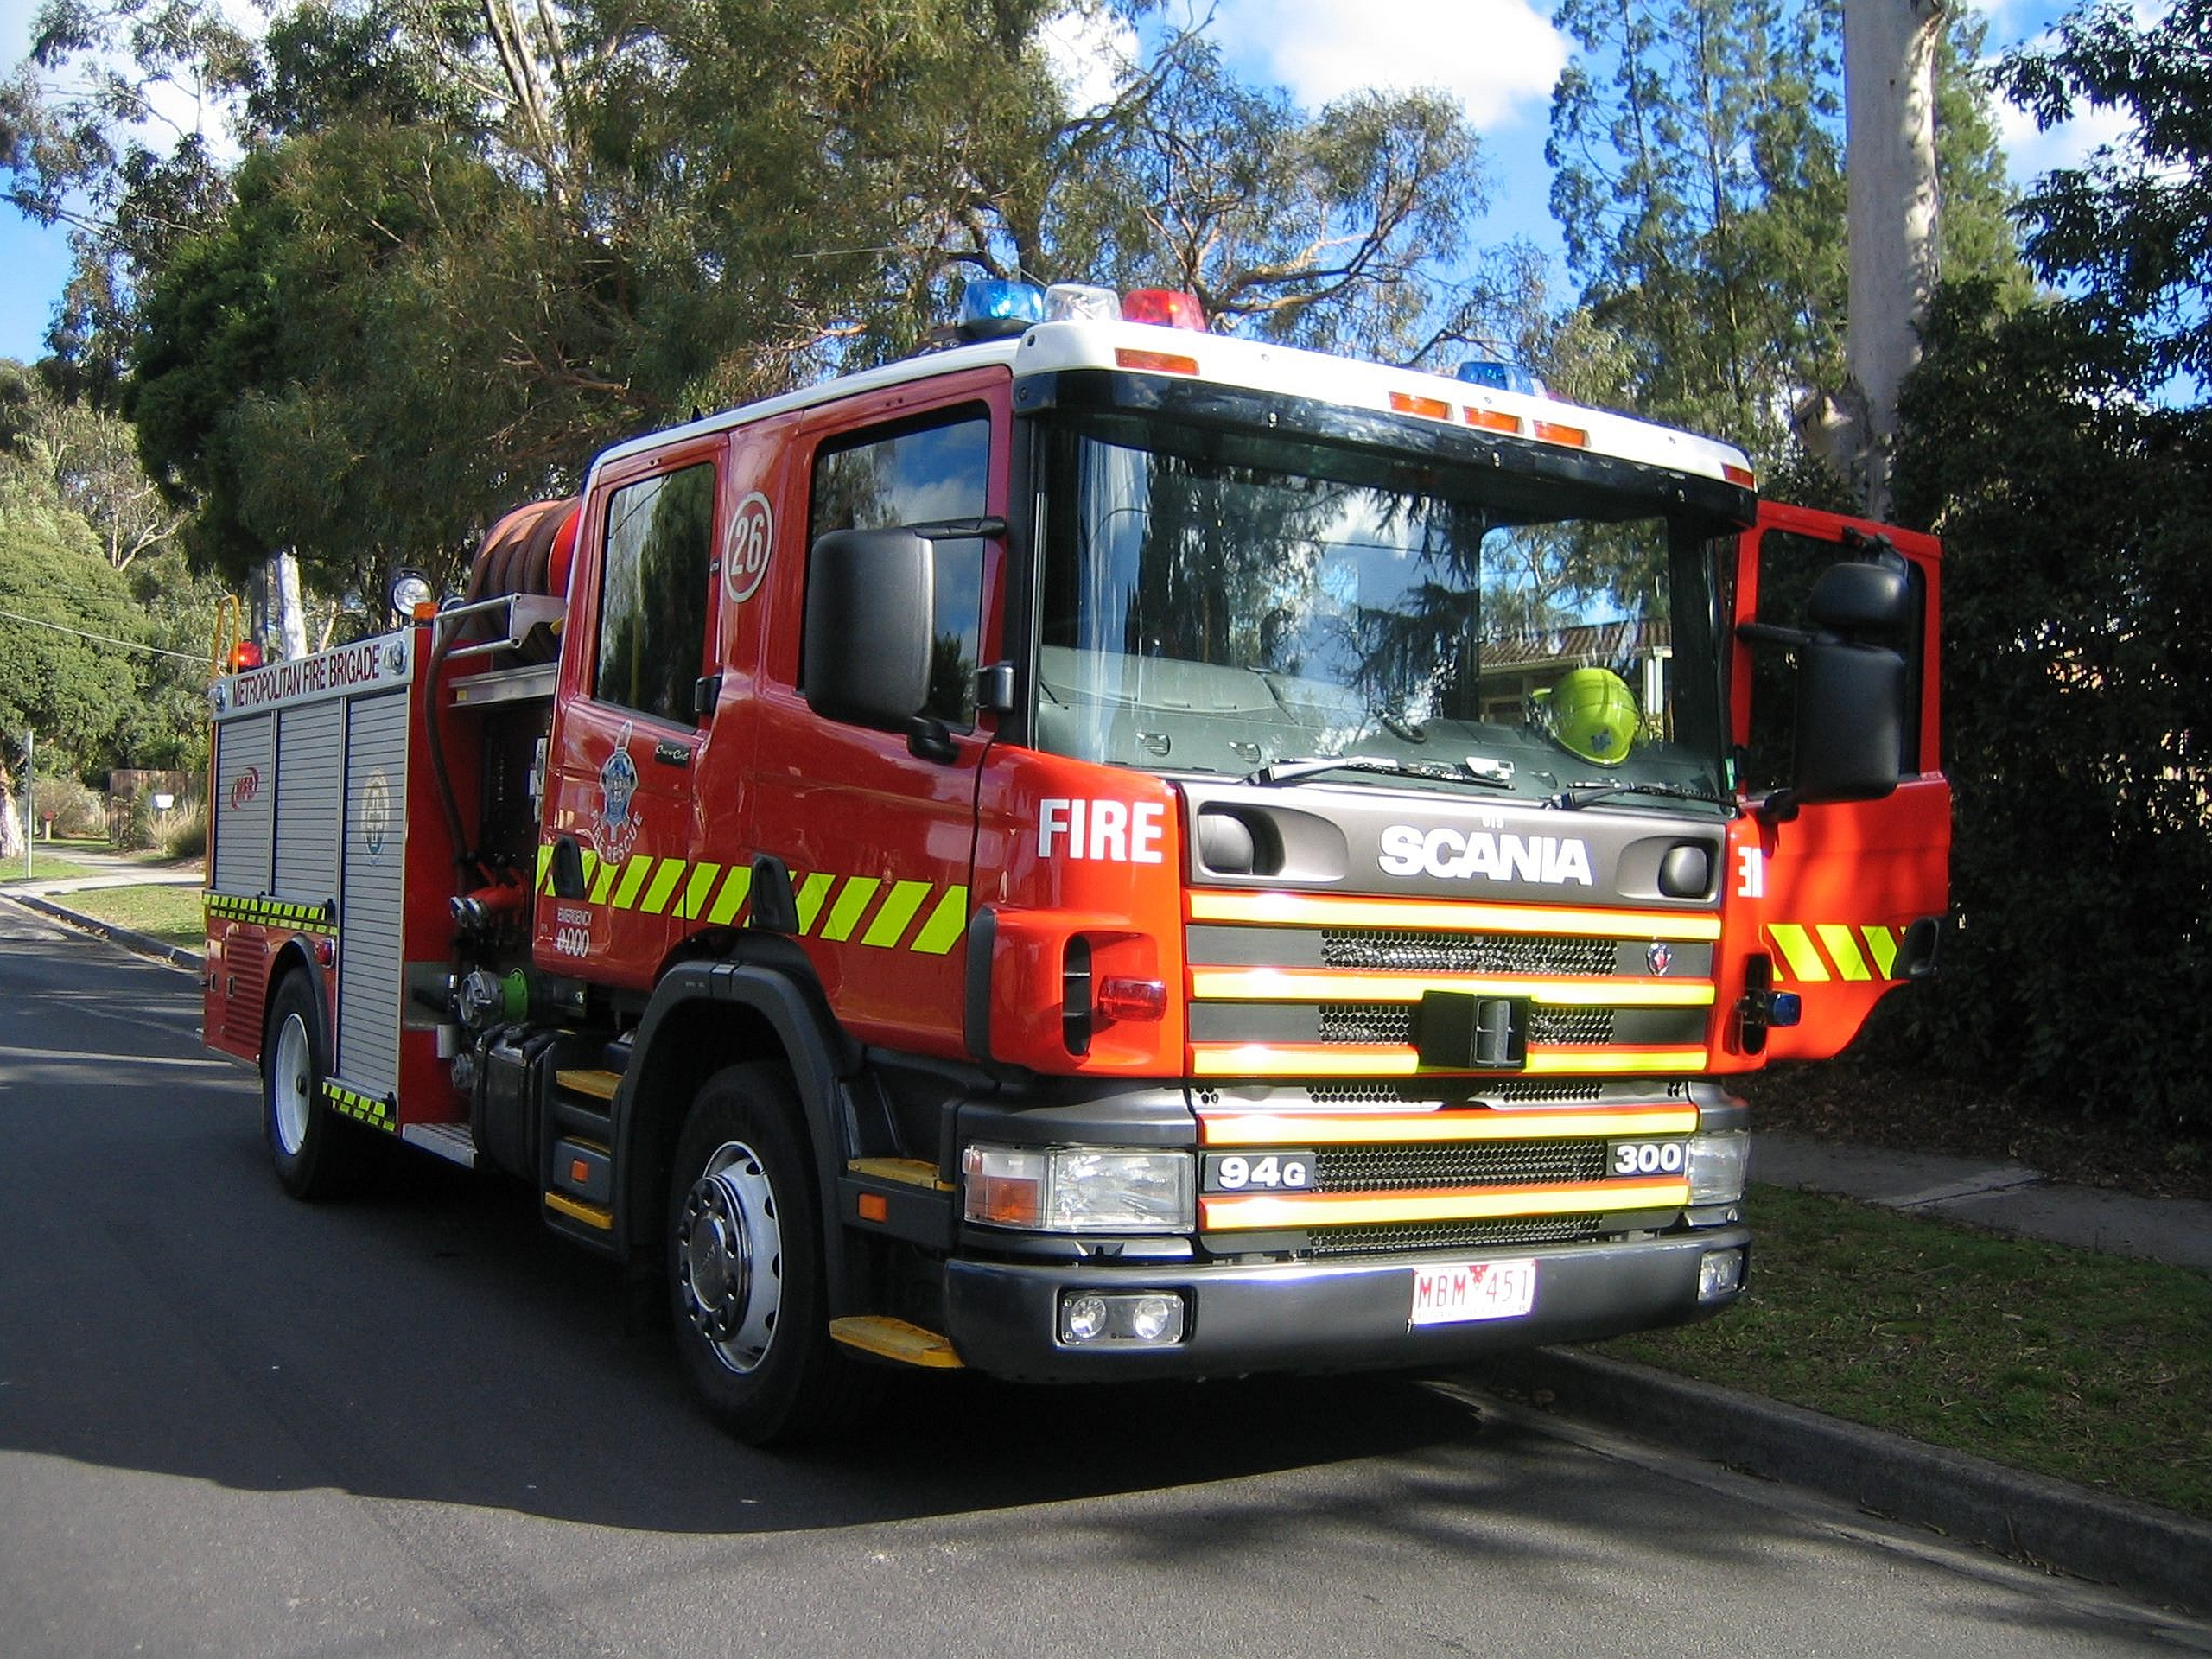 Scania Fire Truck Computer Wallpapers Desktop Backgrounds 2560x1920 2560x1920